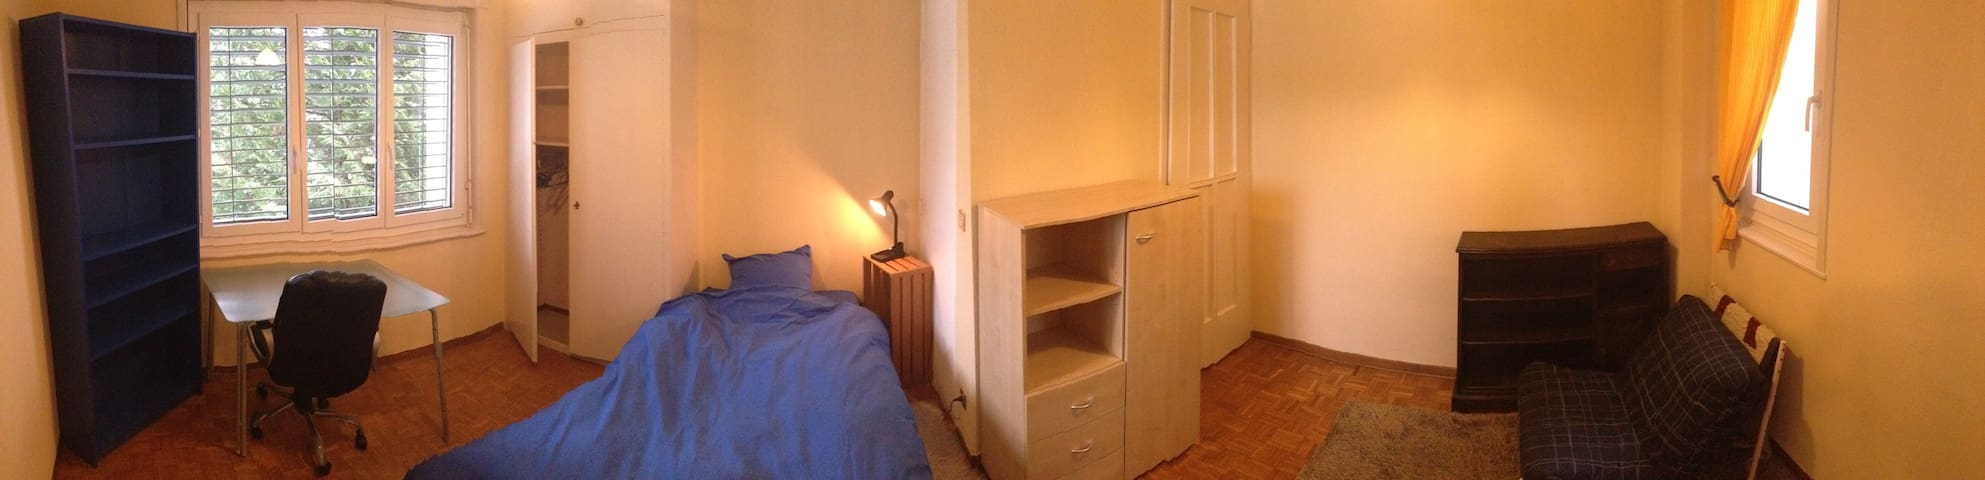 Room Rental in Big Apt. Downtown Lausanne1 - Morges - Appartement